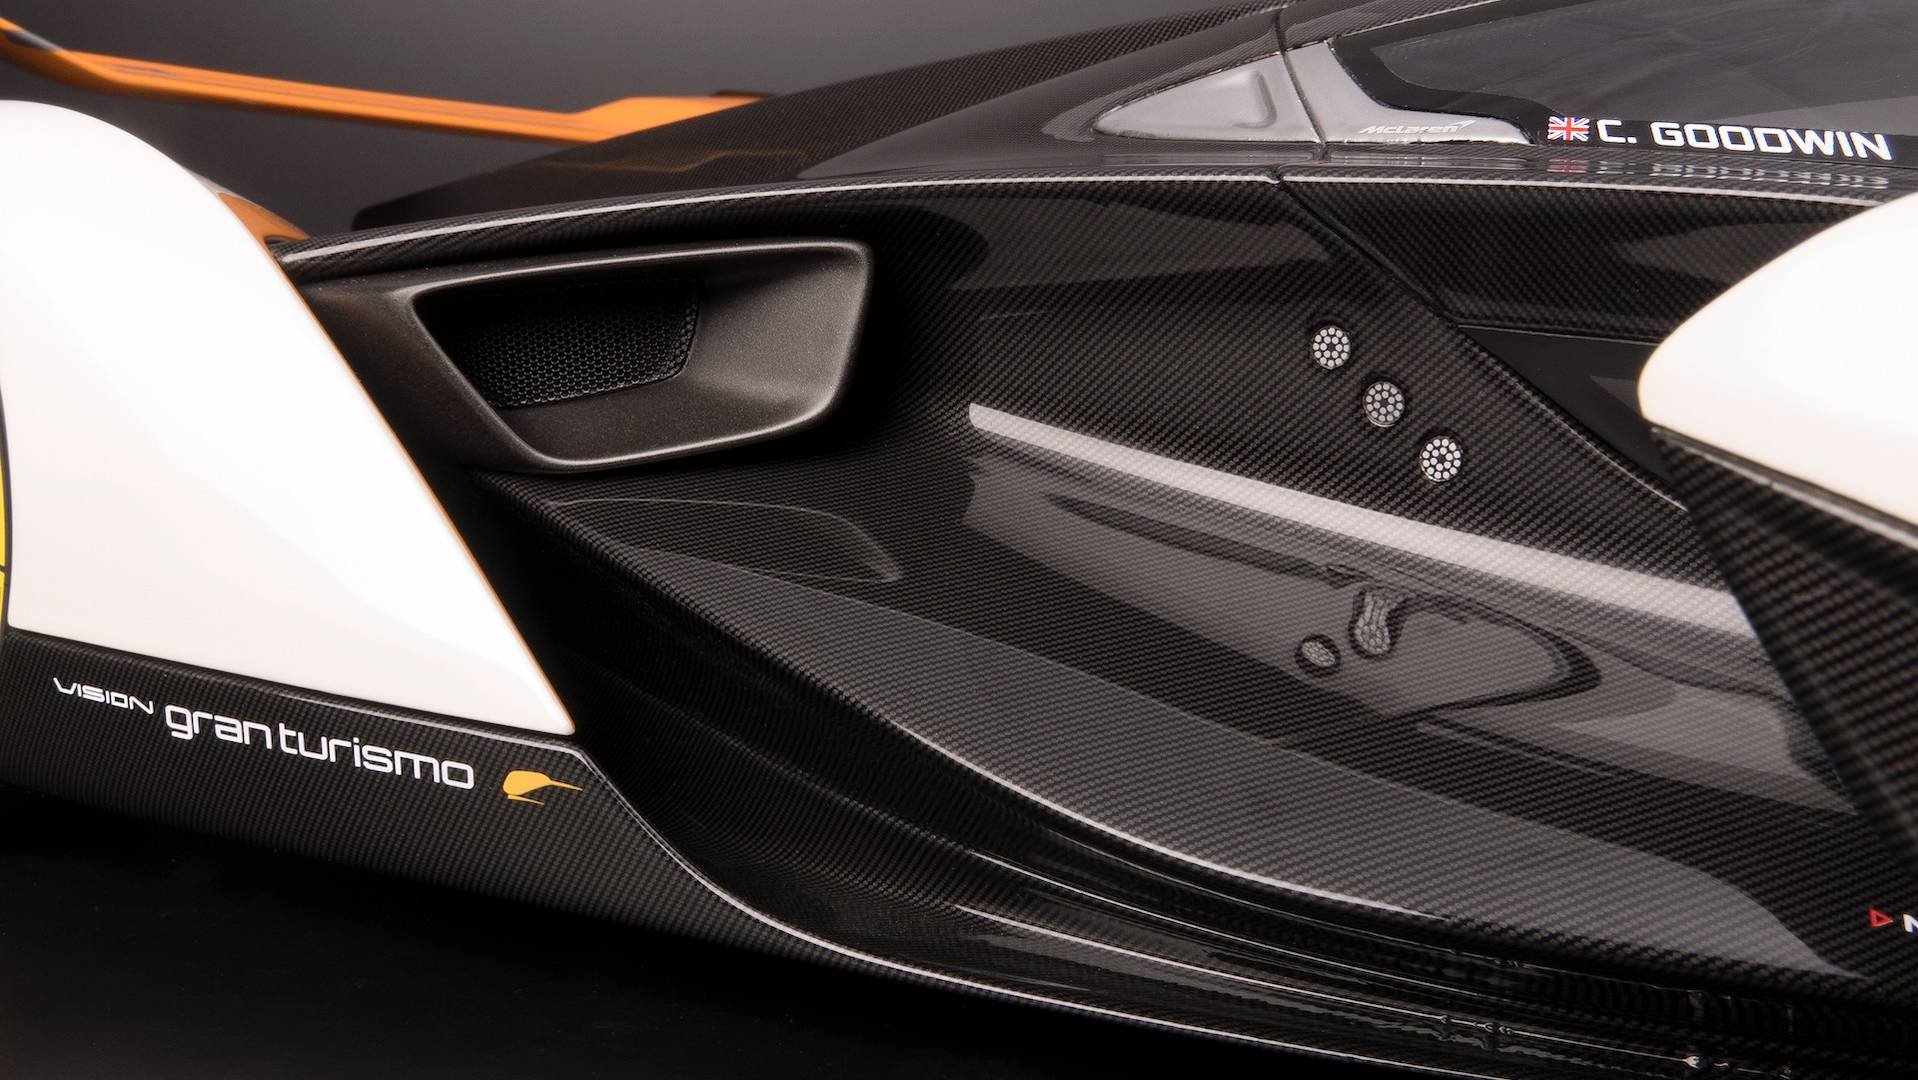 mclaren-ultimate-vision-gt-scale-model (16)